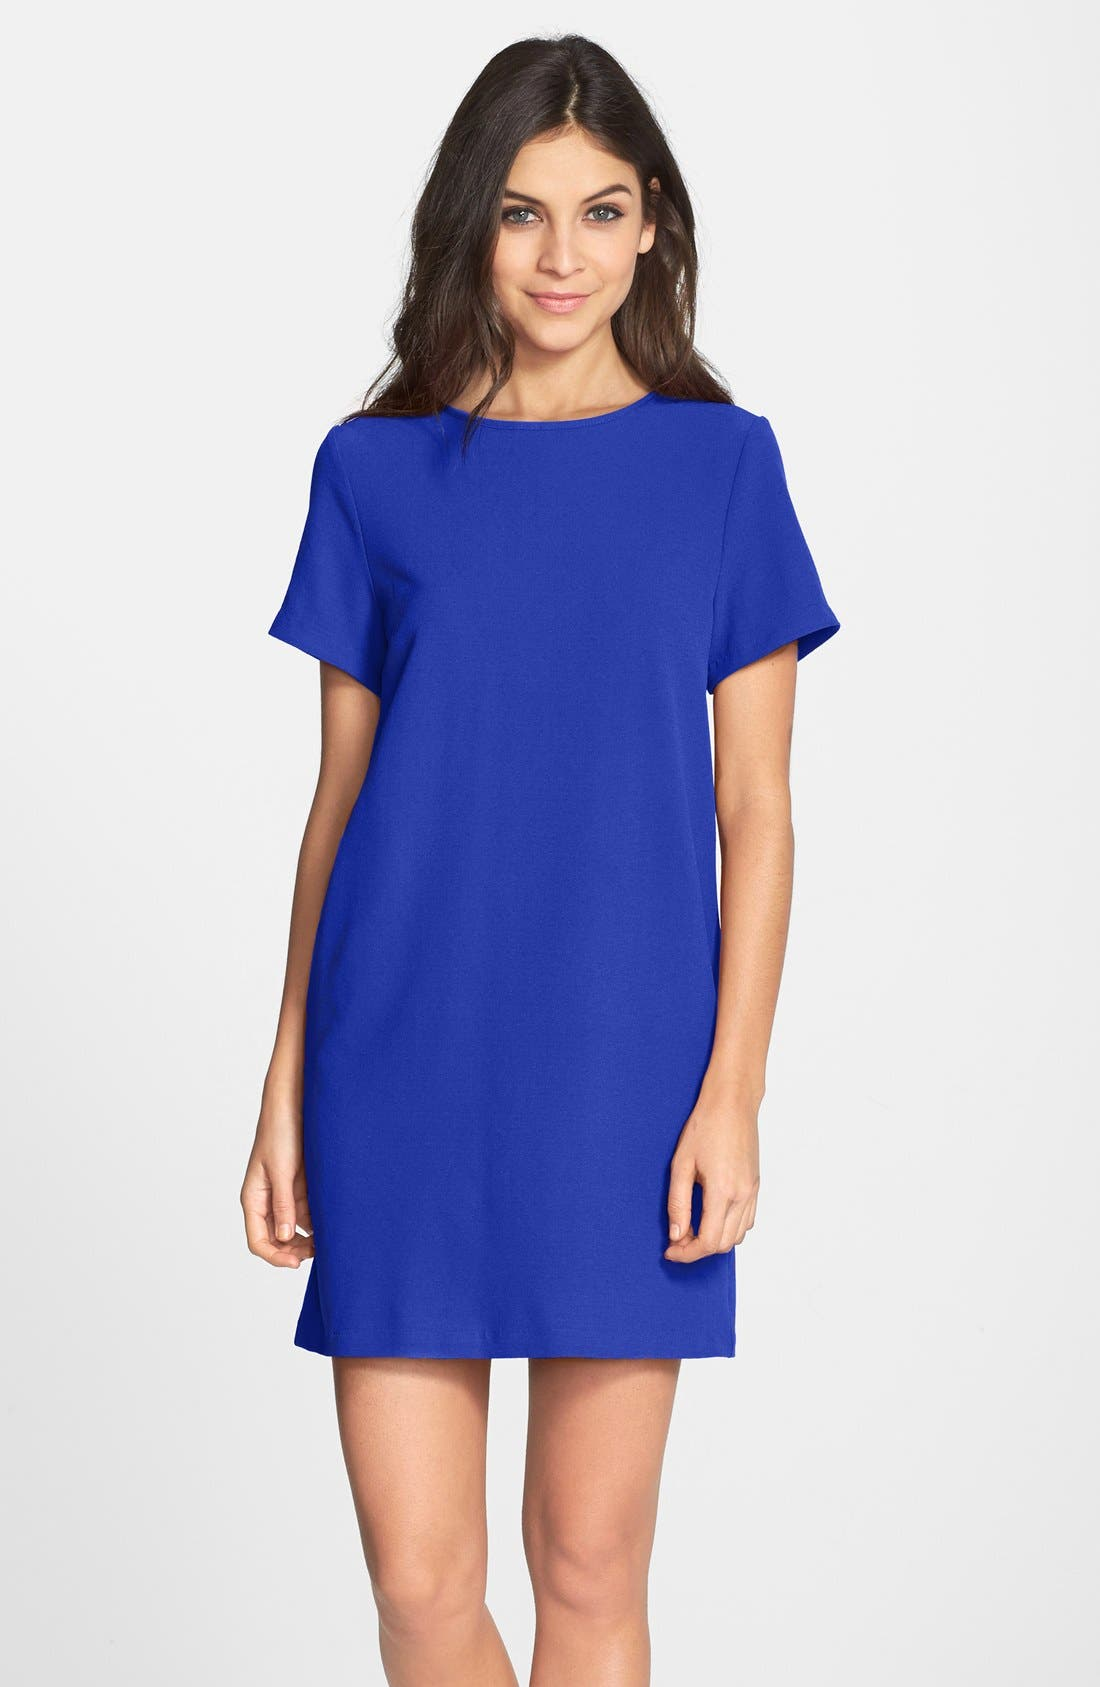 Alternate Image 1 Selected - Felicity & Coco Crepe Shift Dress (Nordstrom Exclusive)